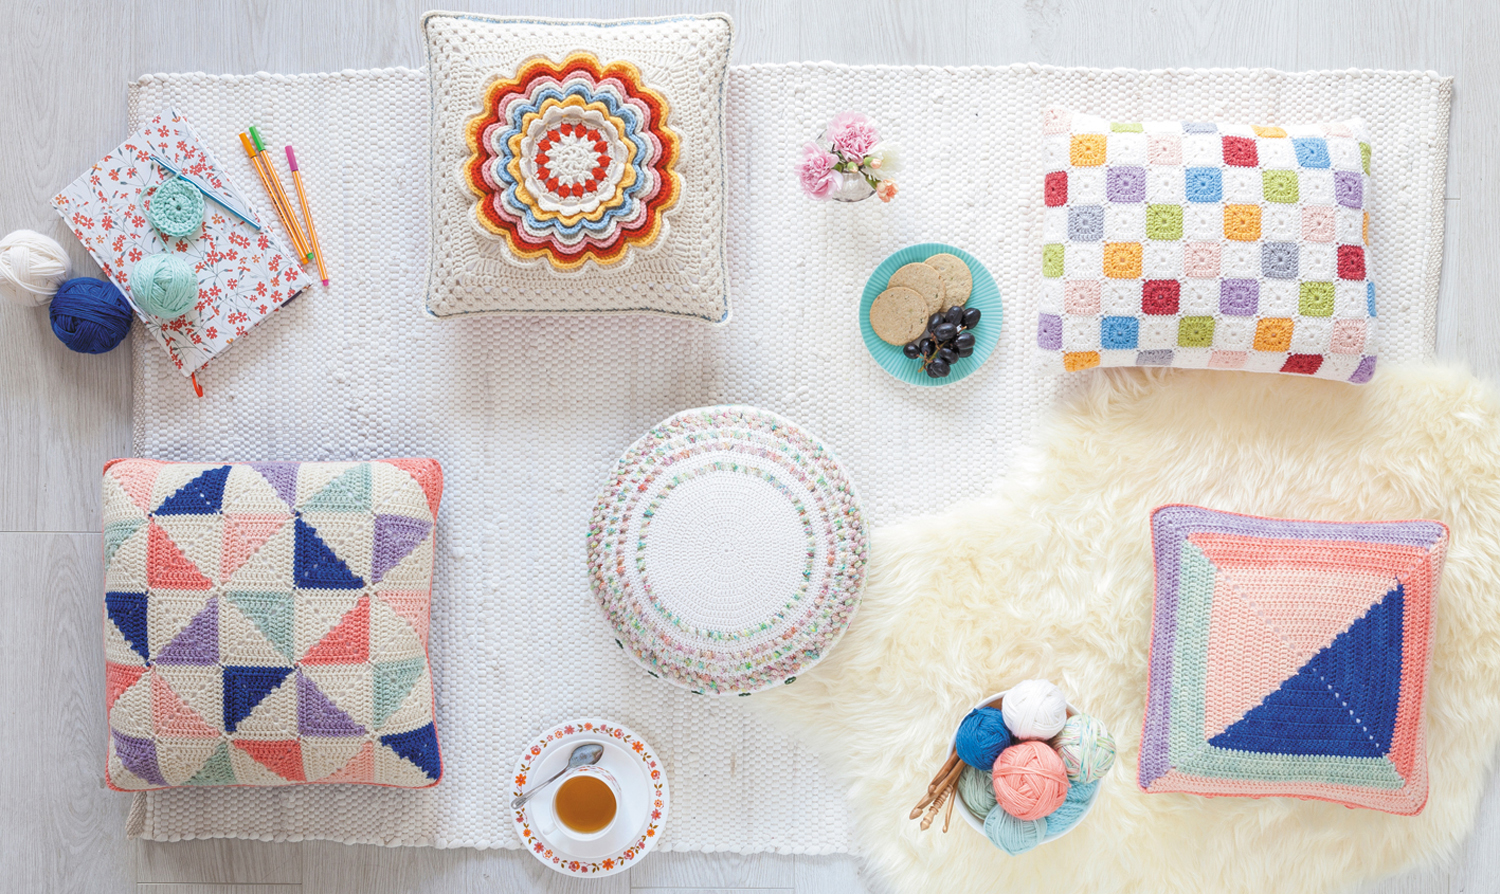 Cushions from Crochet Home by Emma Lamb | Crochet designs and styling by Emma Lamb / Photography by Jason M Jenkins